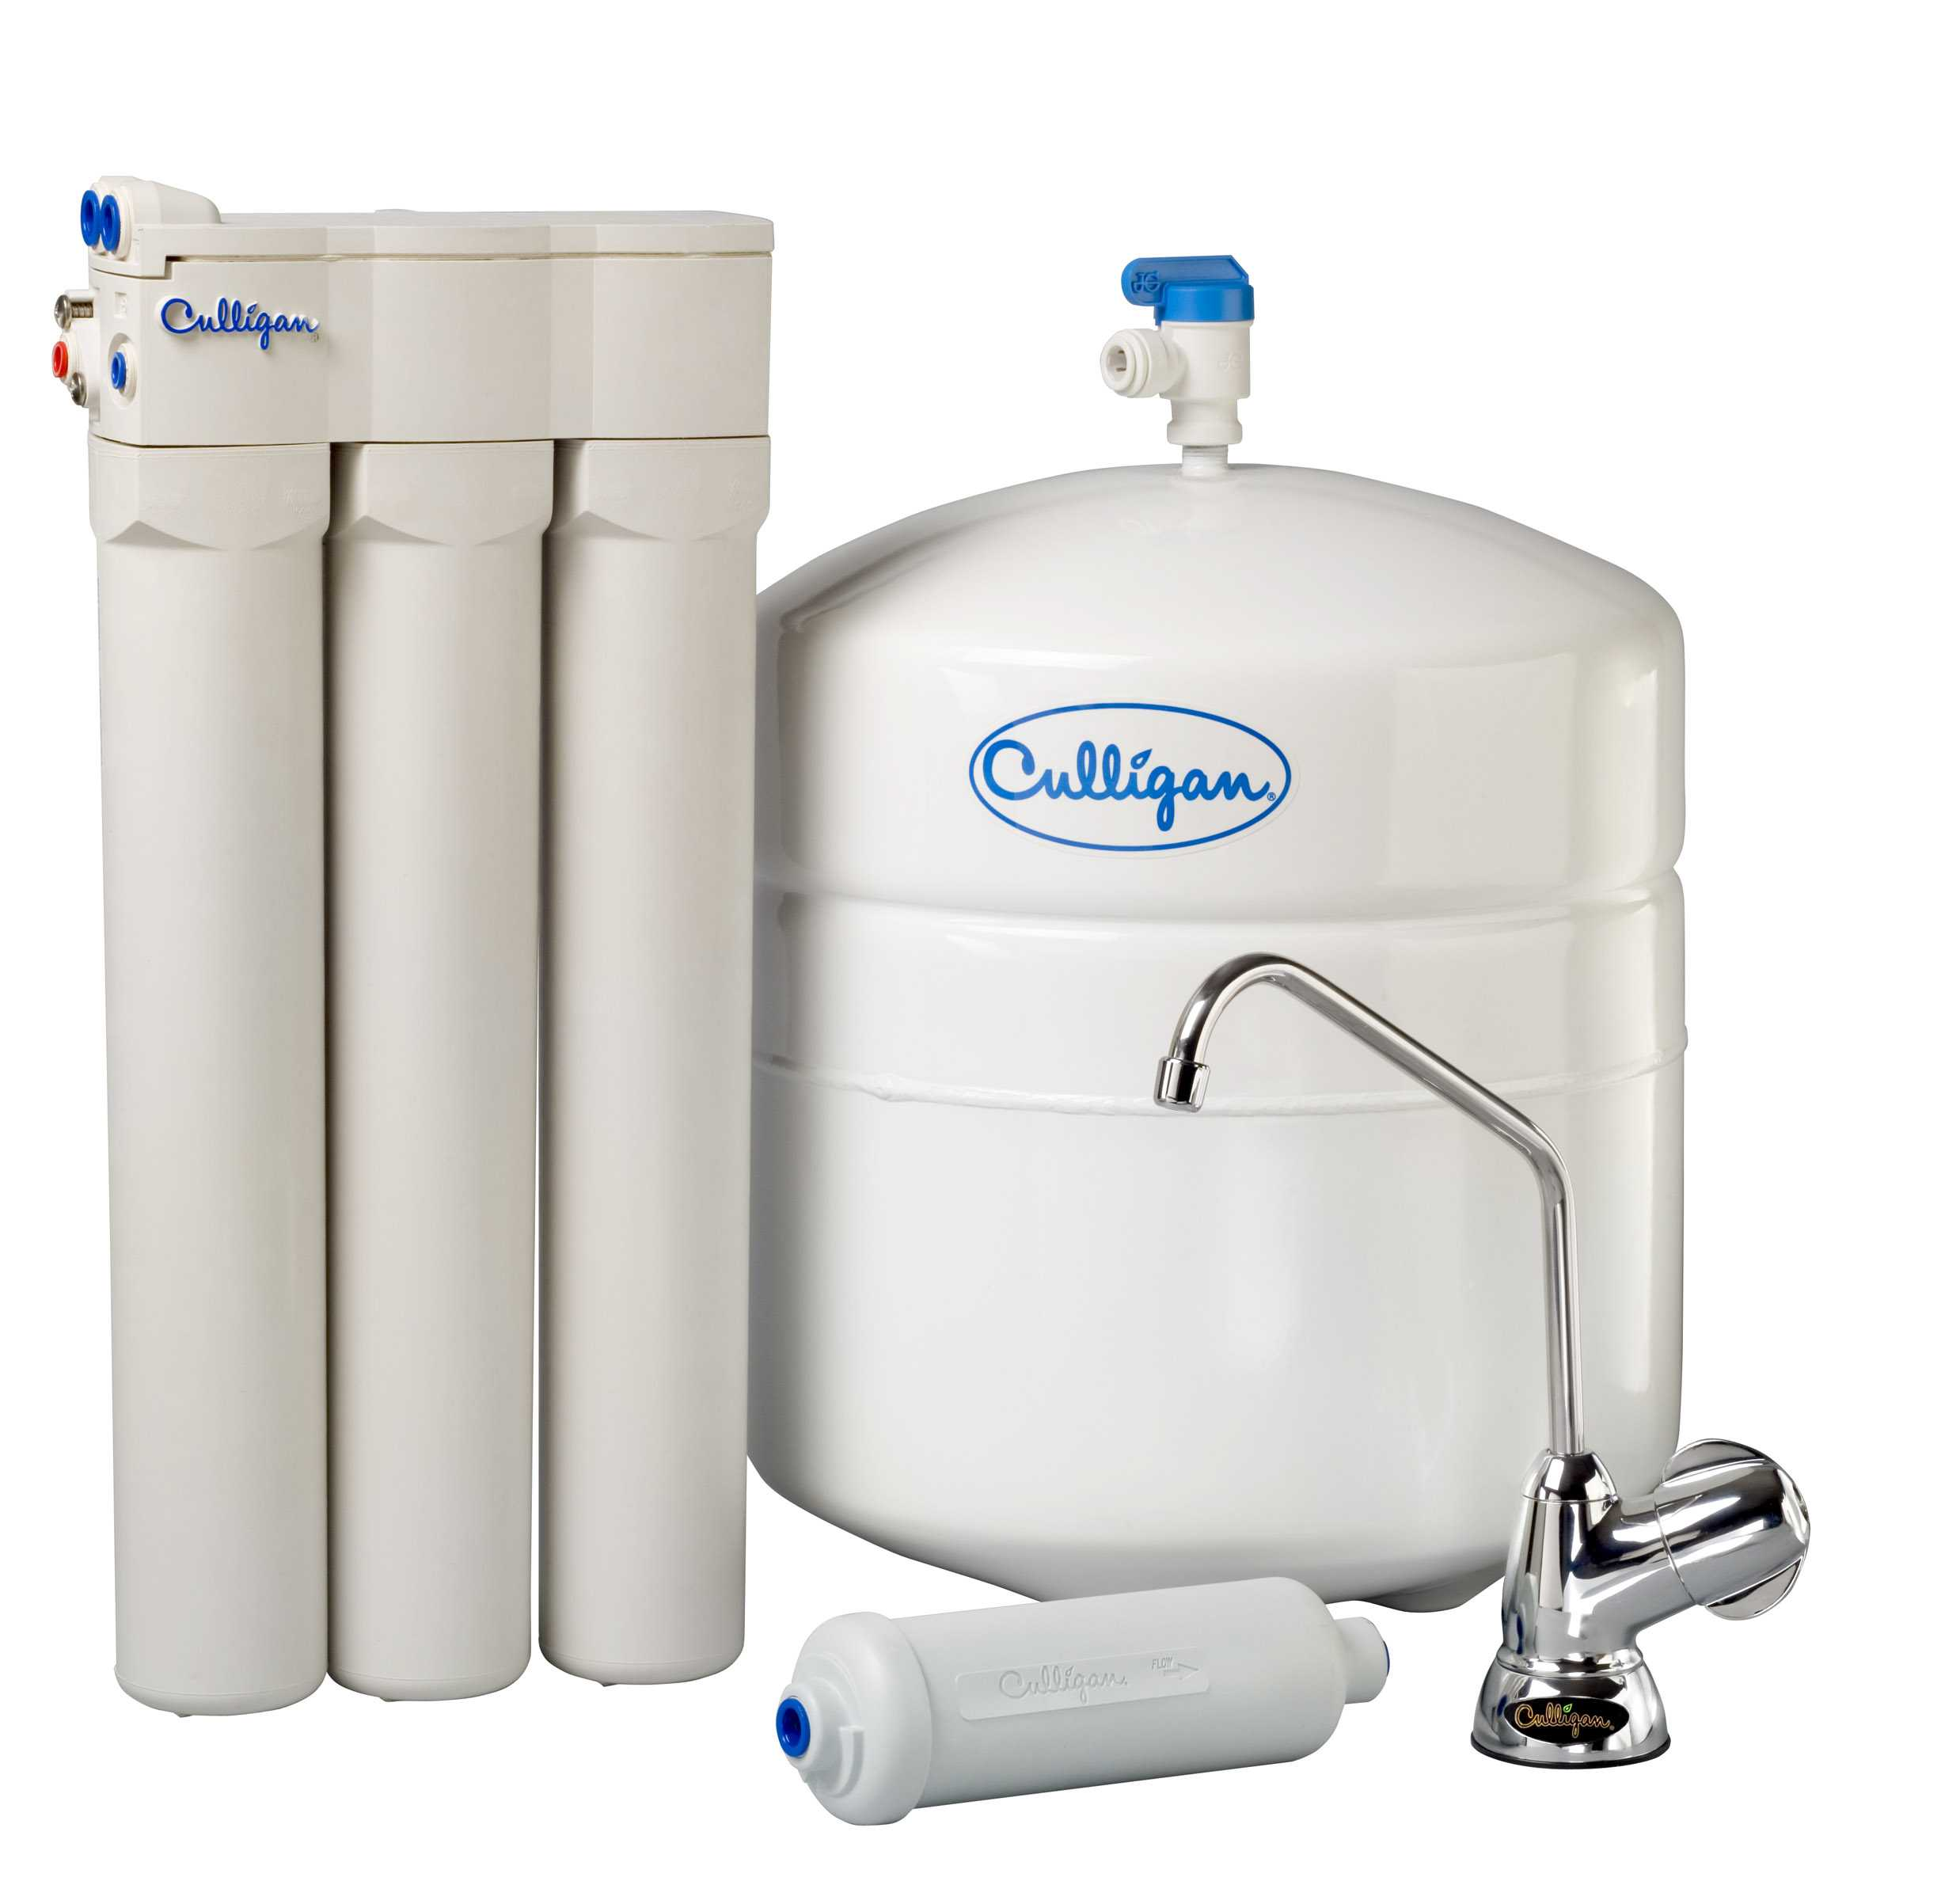 culligan whole house water